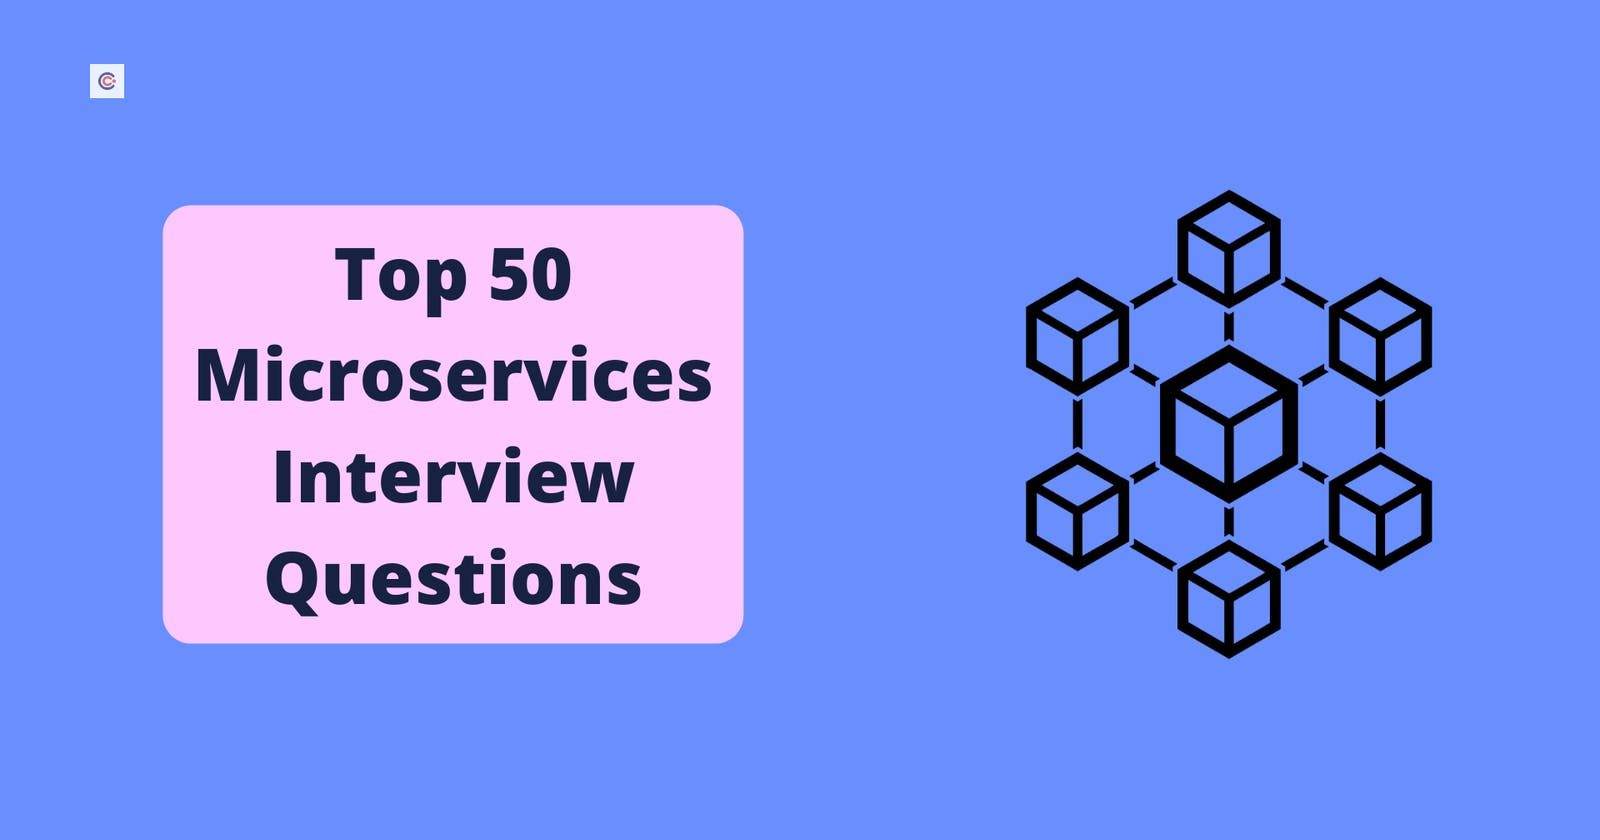 Top 50 Microservices Interview Questions in 2021